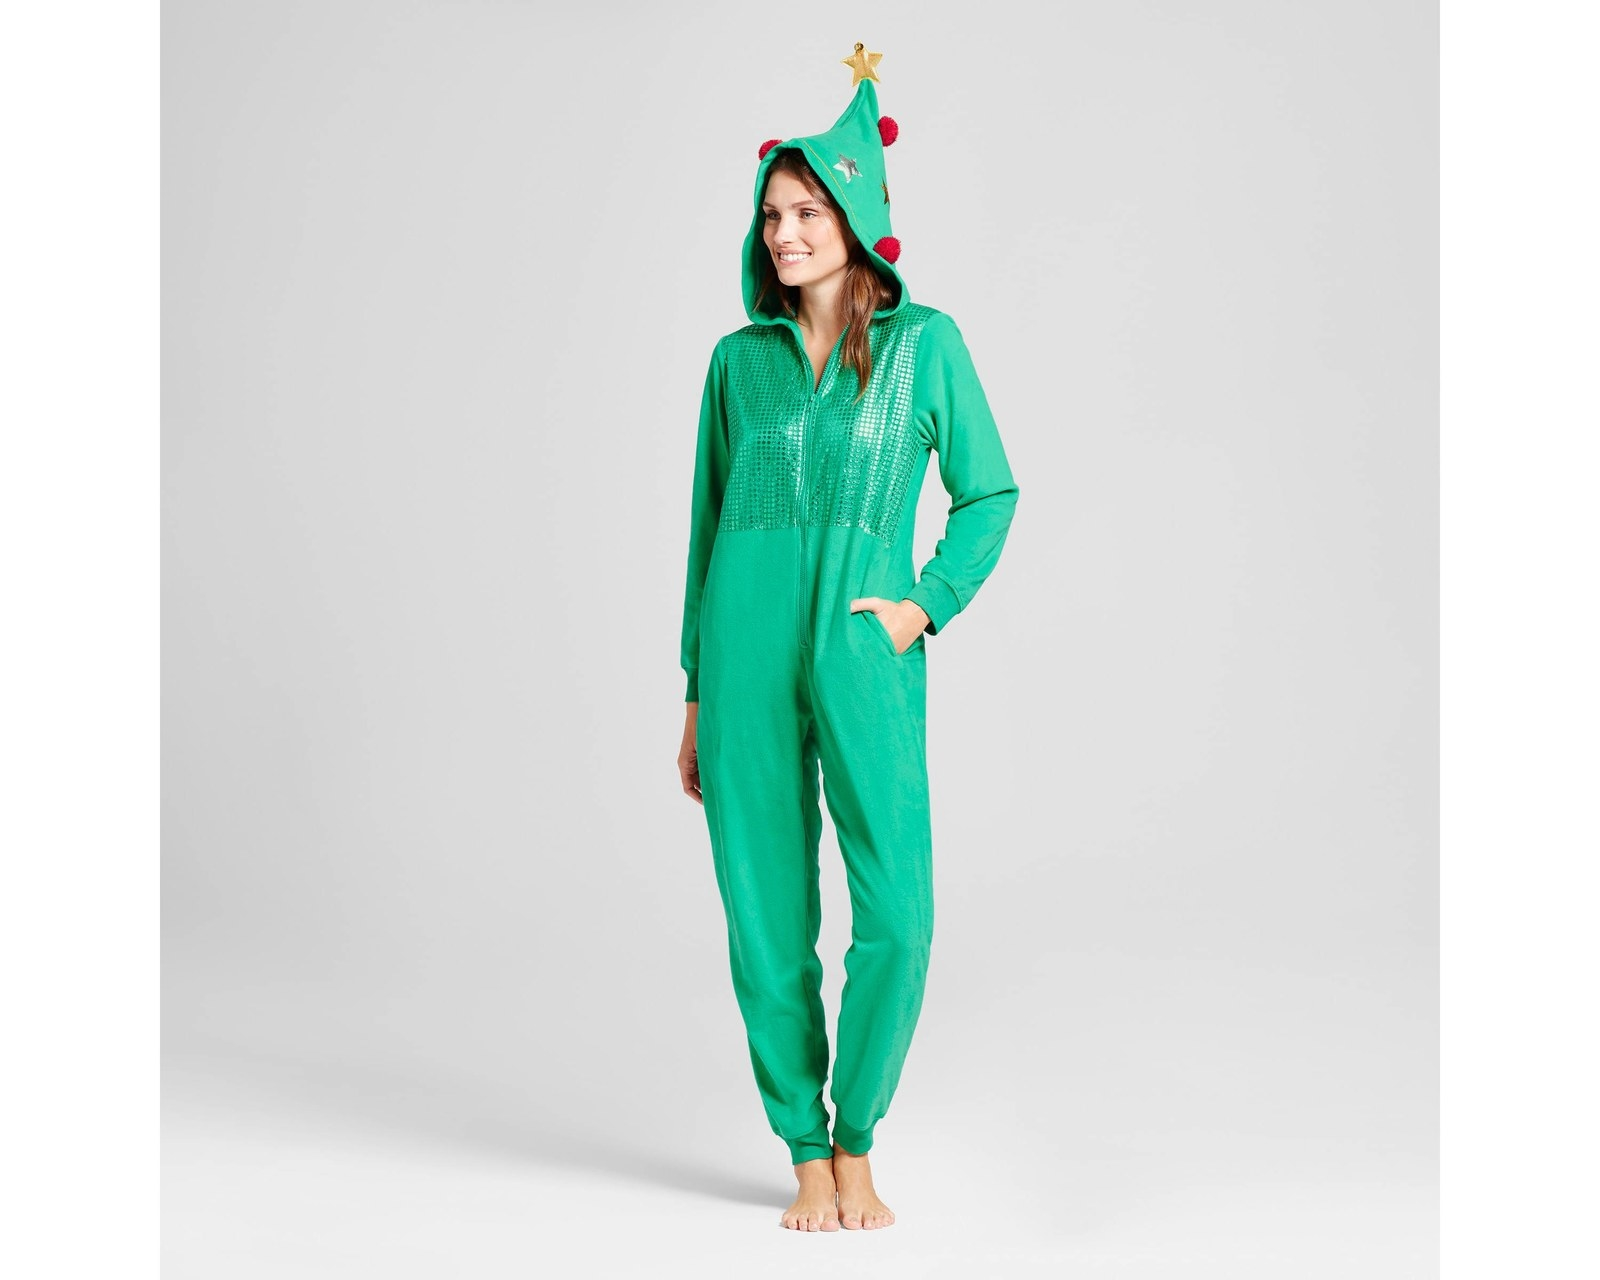 ea99c3b735 33 Cozy Onesies That Will Complete You